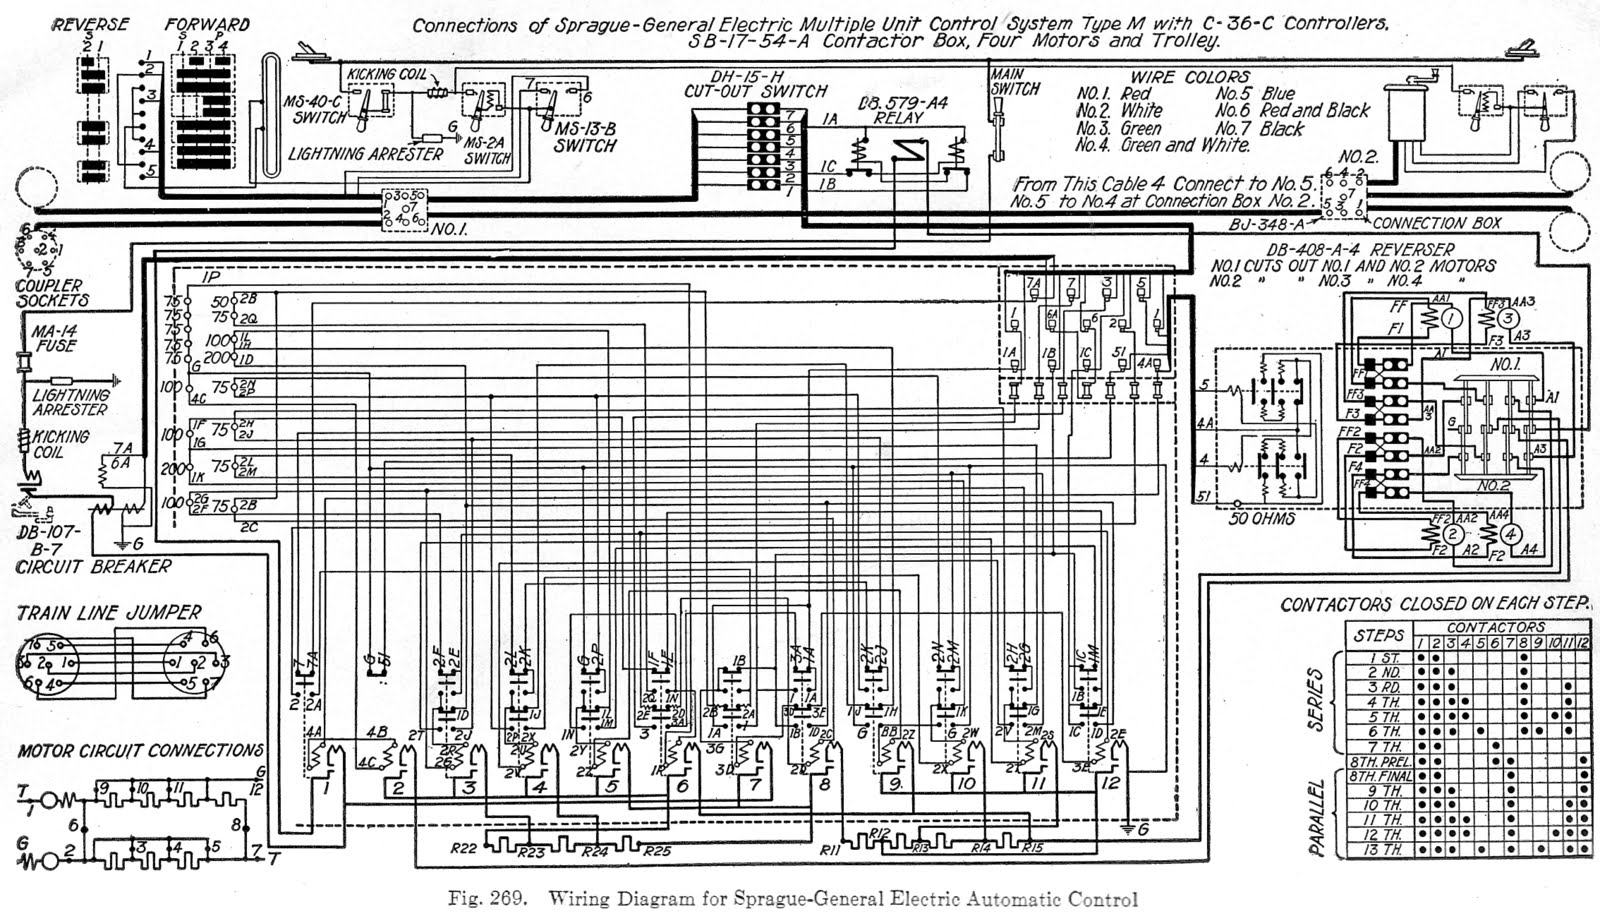 Hicks Car Works Control Circuit Diagrams Pneumatic Wiring Diagram